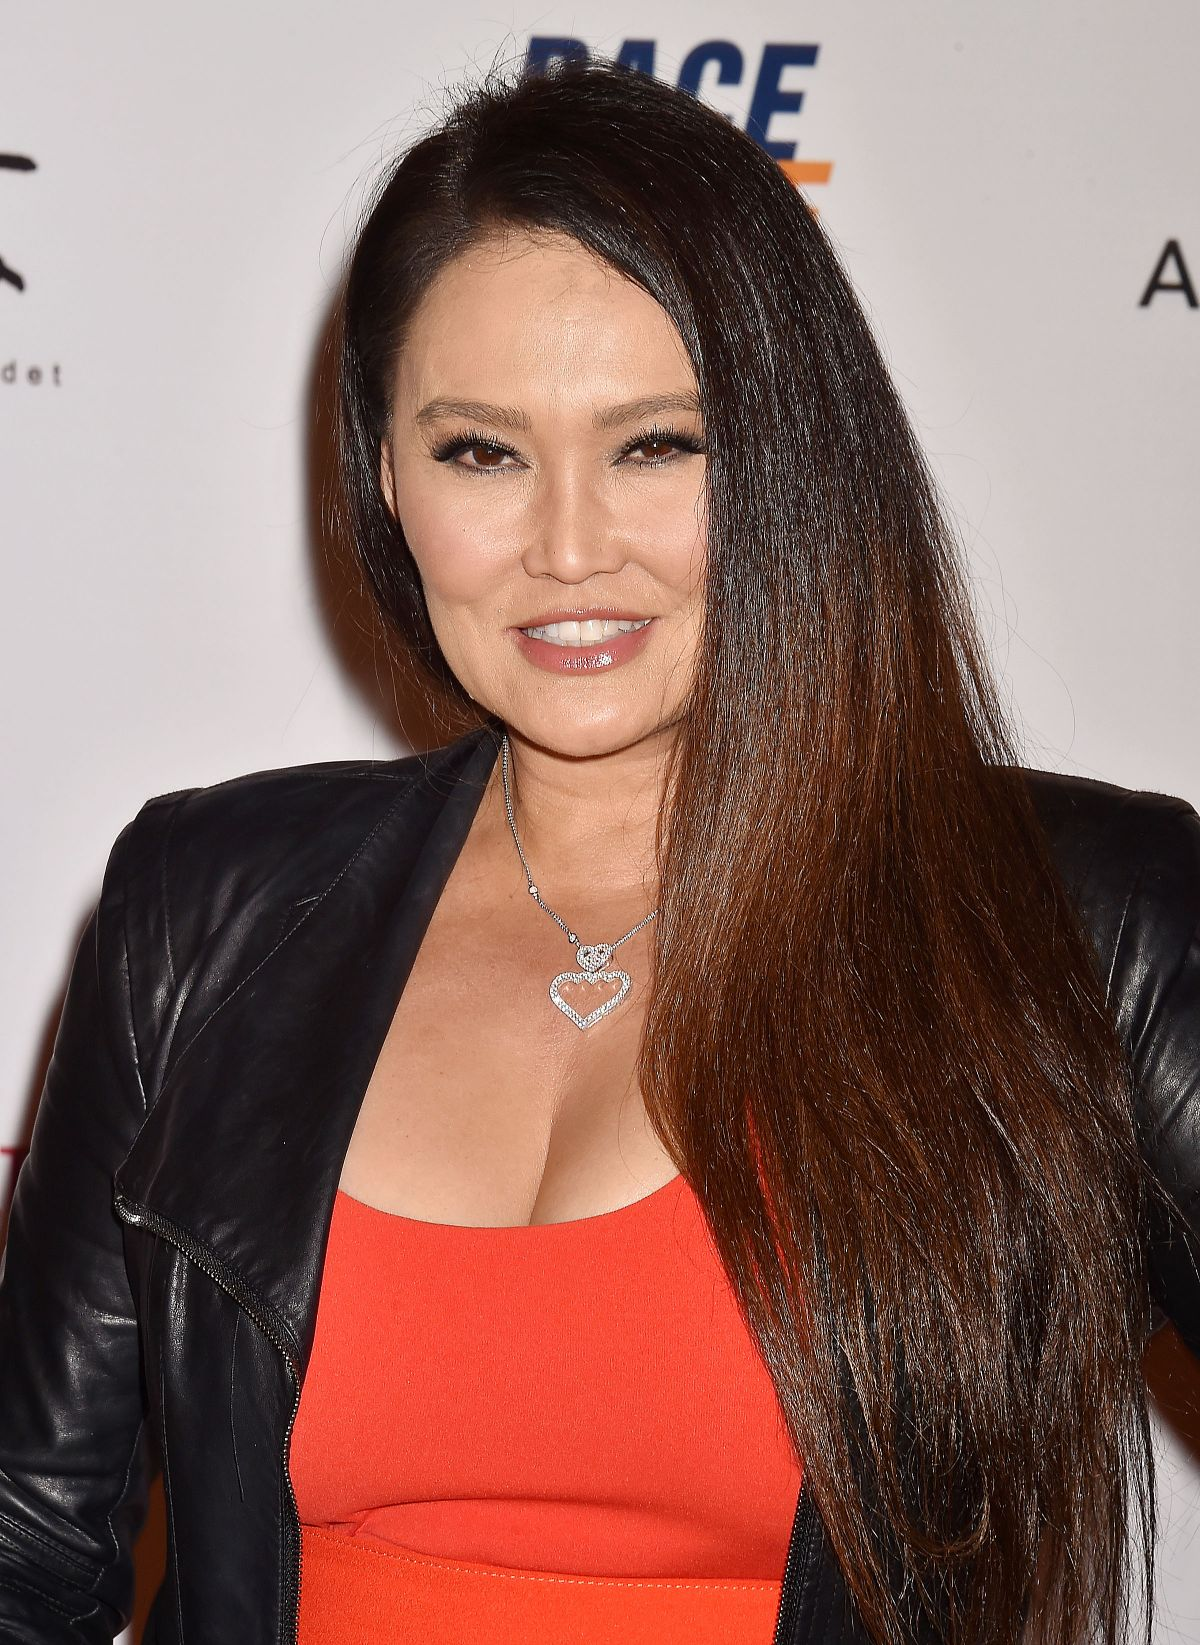 TIA CARRERE at Race to Erase MS Gala in Beverly Hills 05